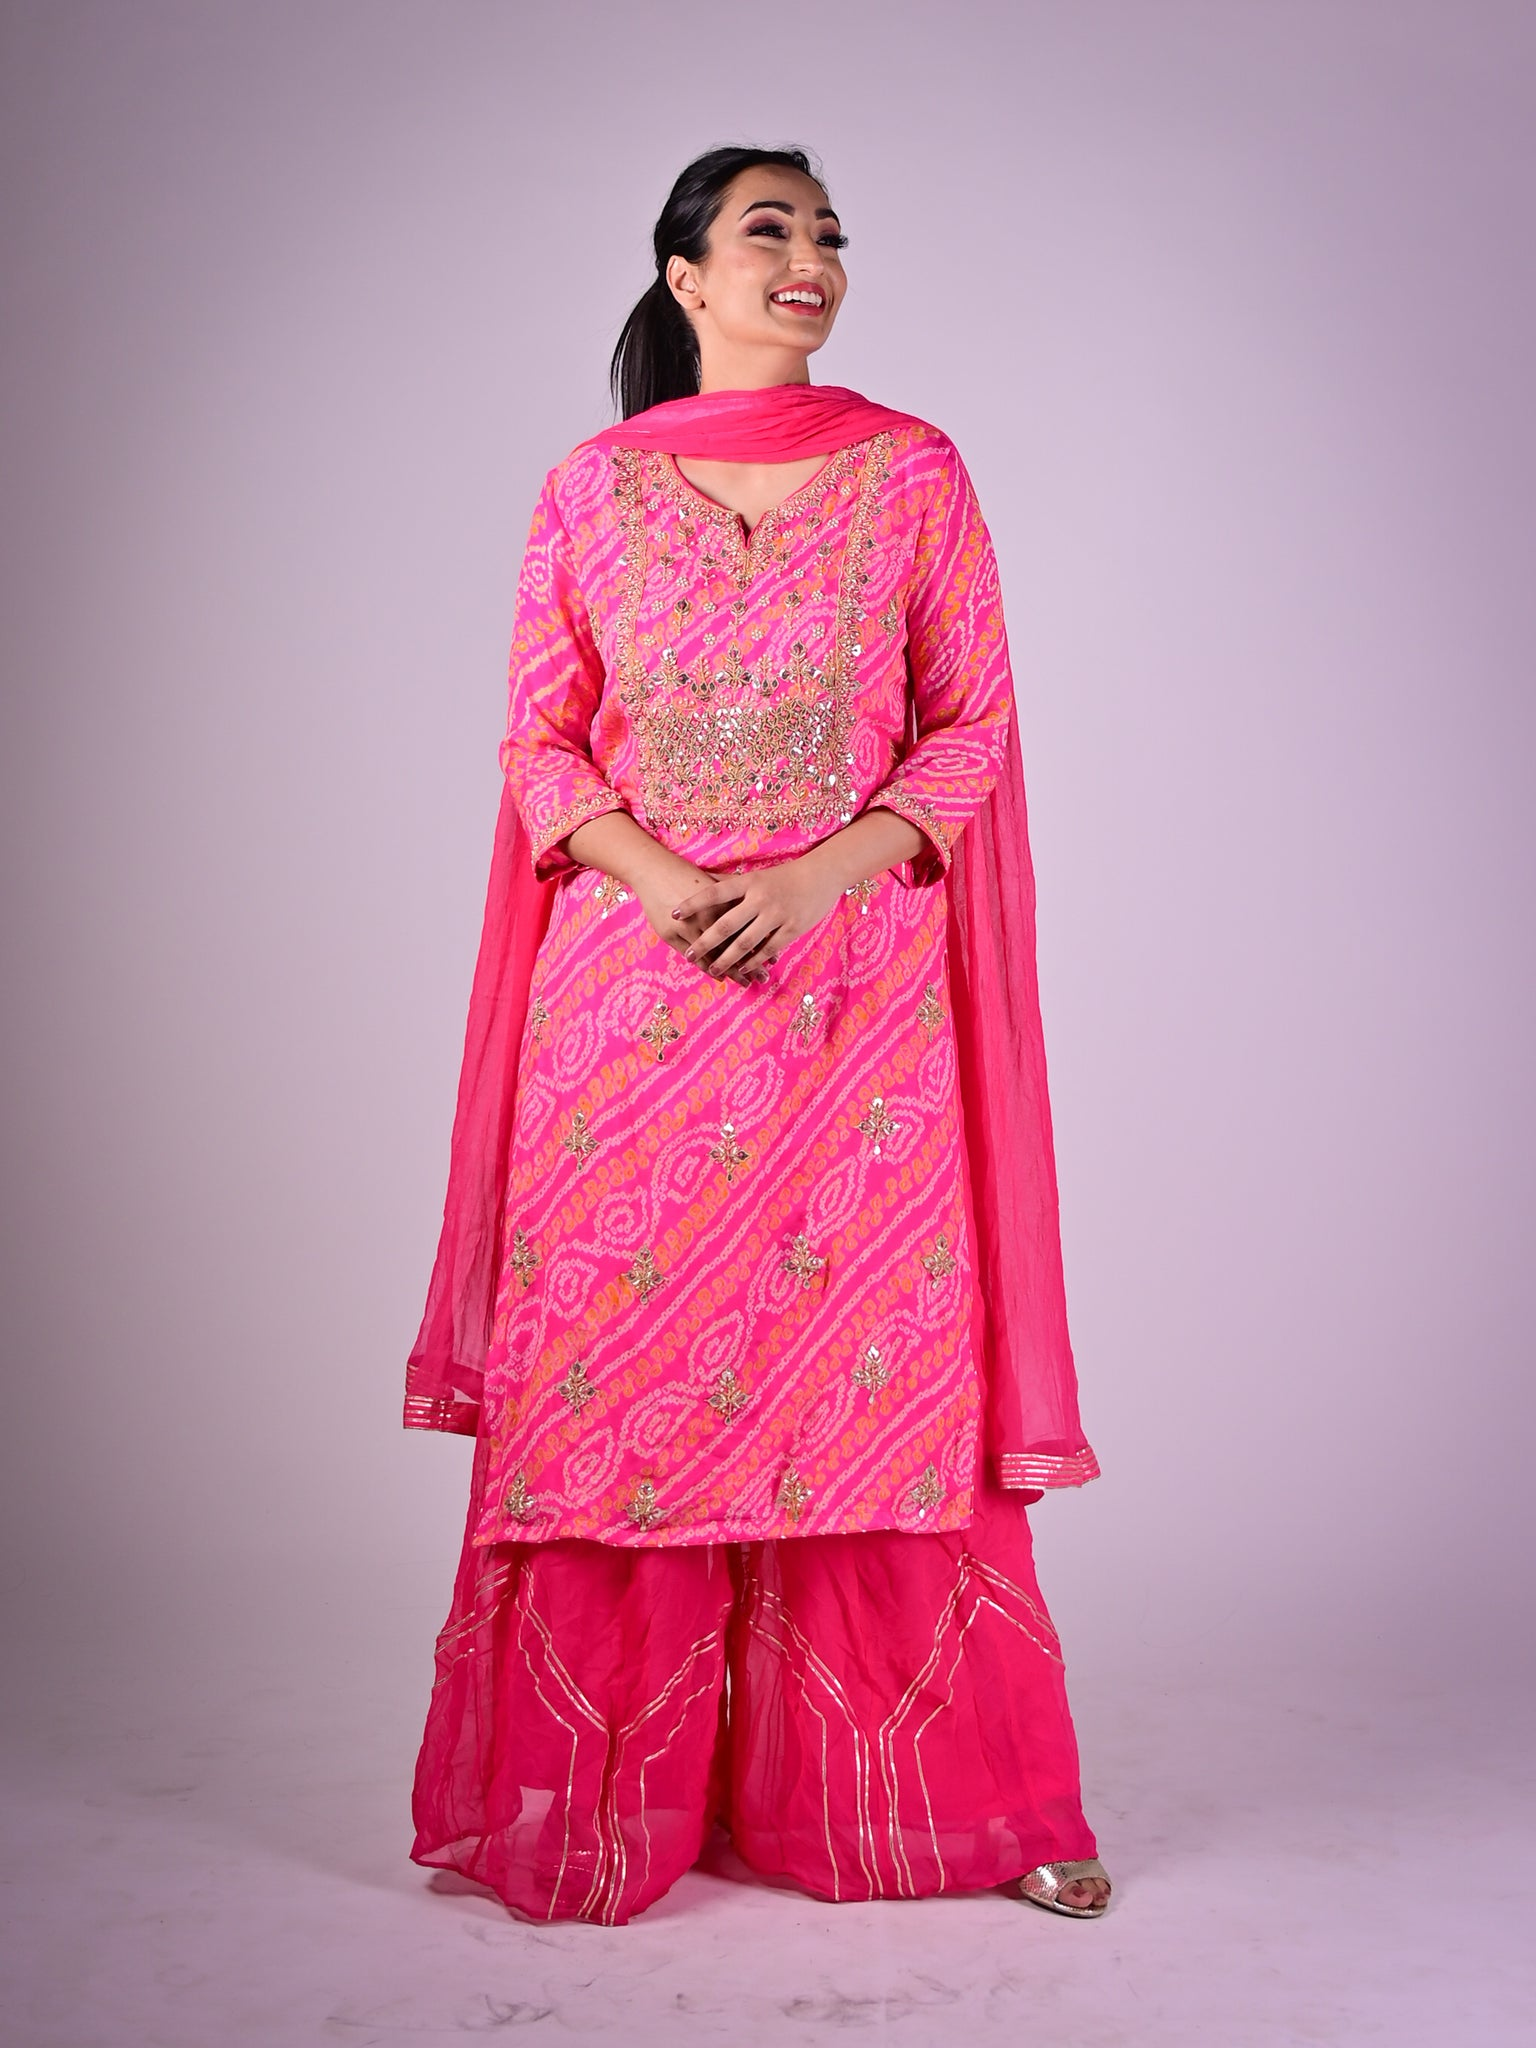 Bubblegum Pink Pallazo Suit With Bandhani Print And Floral Embroidery